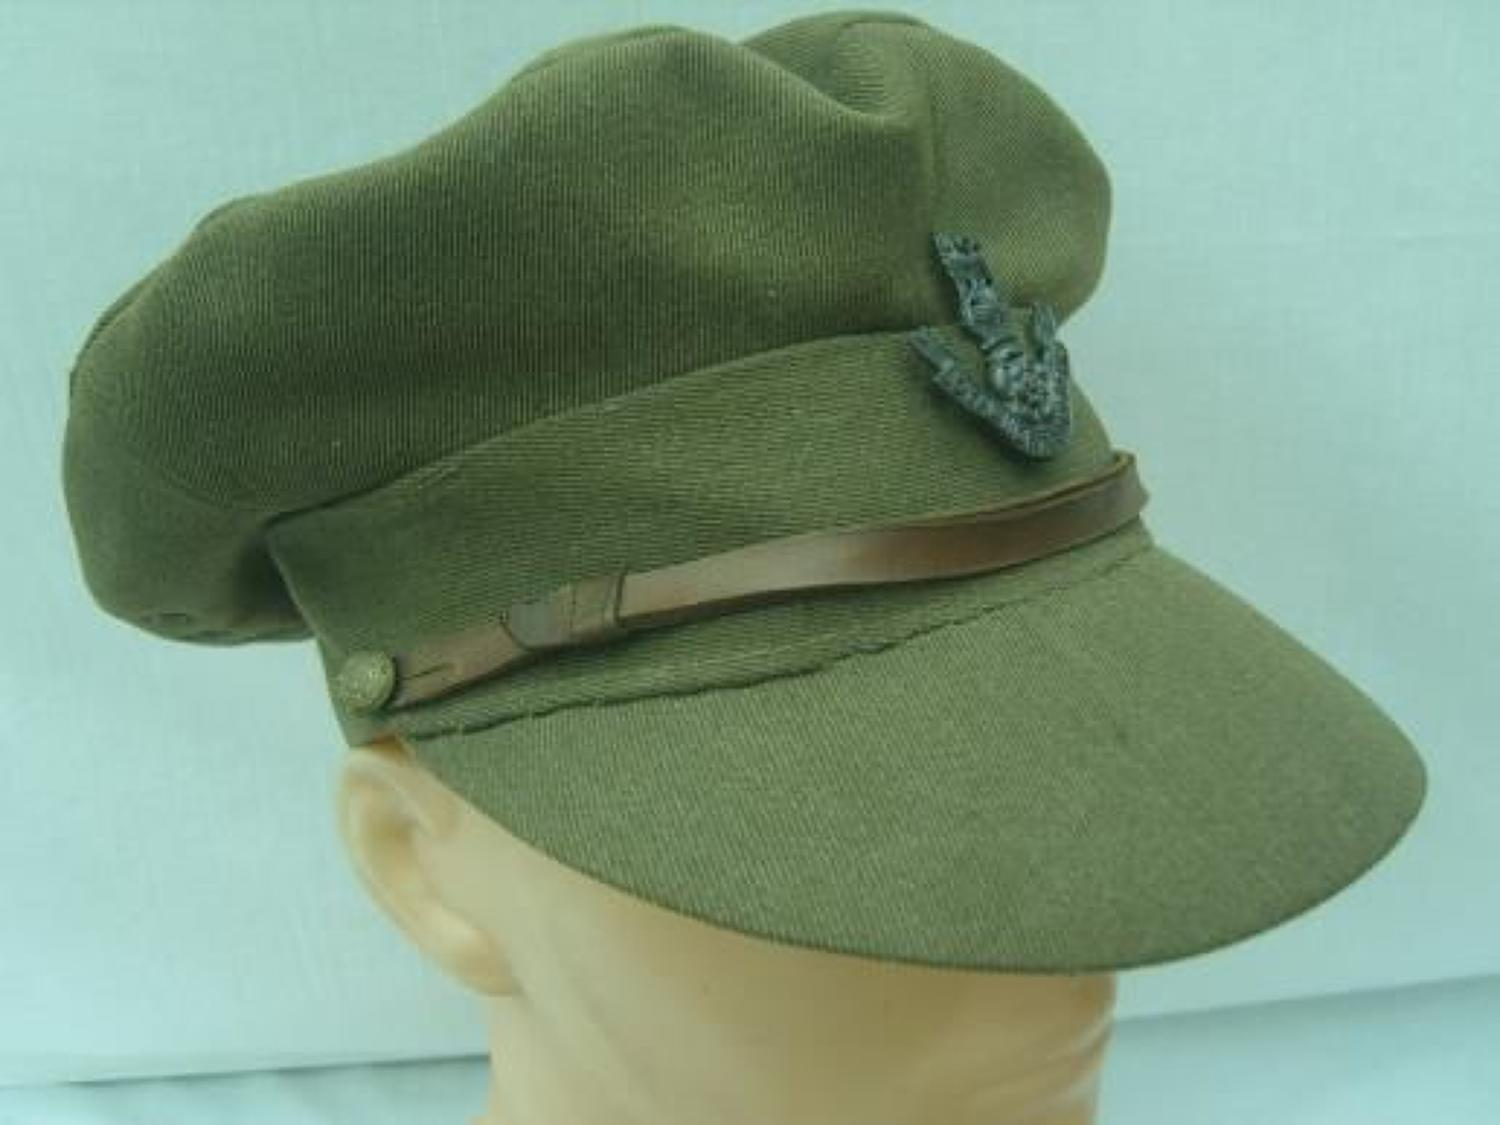 WW1 BRITISH OFFICERS FLOPPY STYLE TRENCH CAP DATED 1918